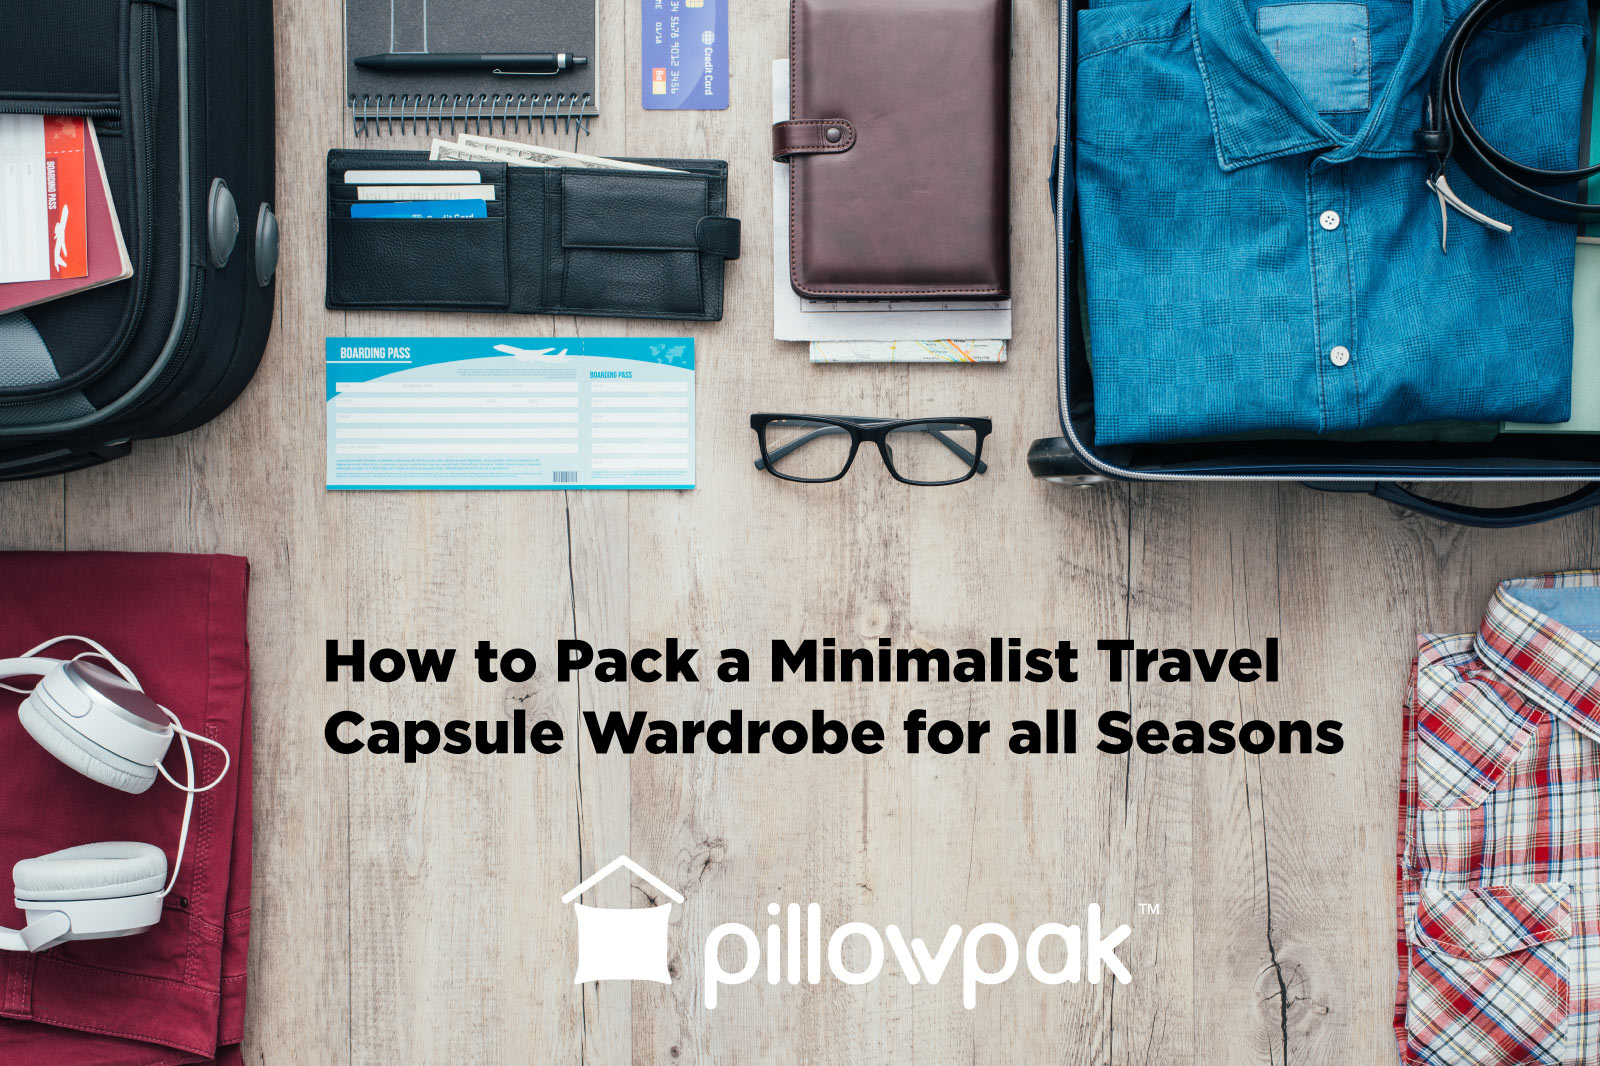 How to Pack a Minimalist Travel Capsule Wardrobe for all Seasons